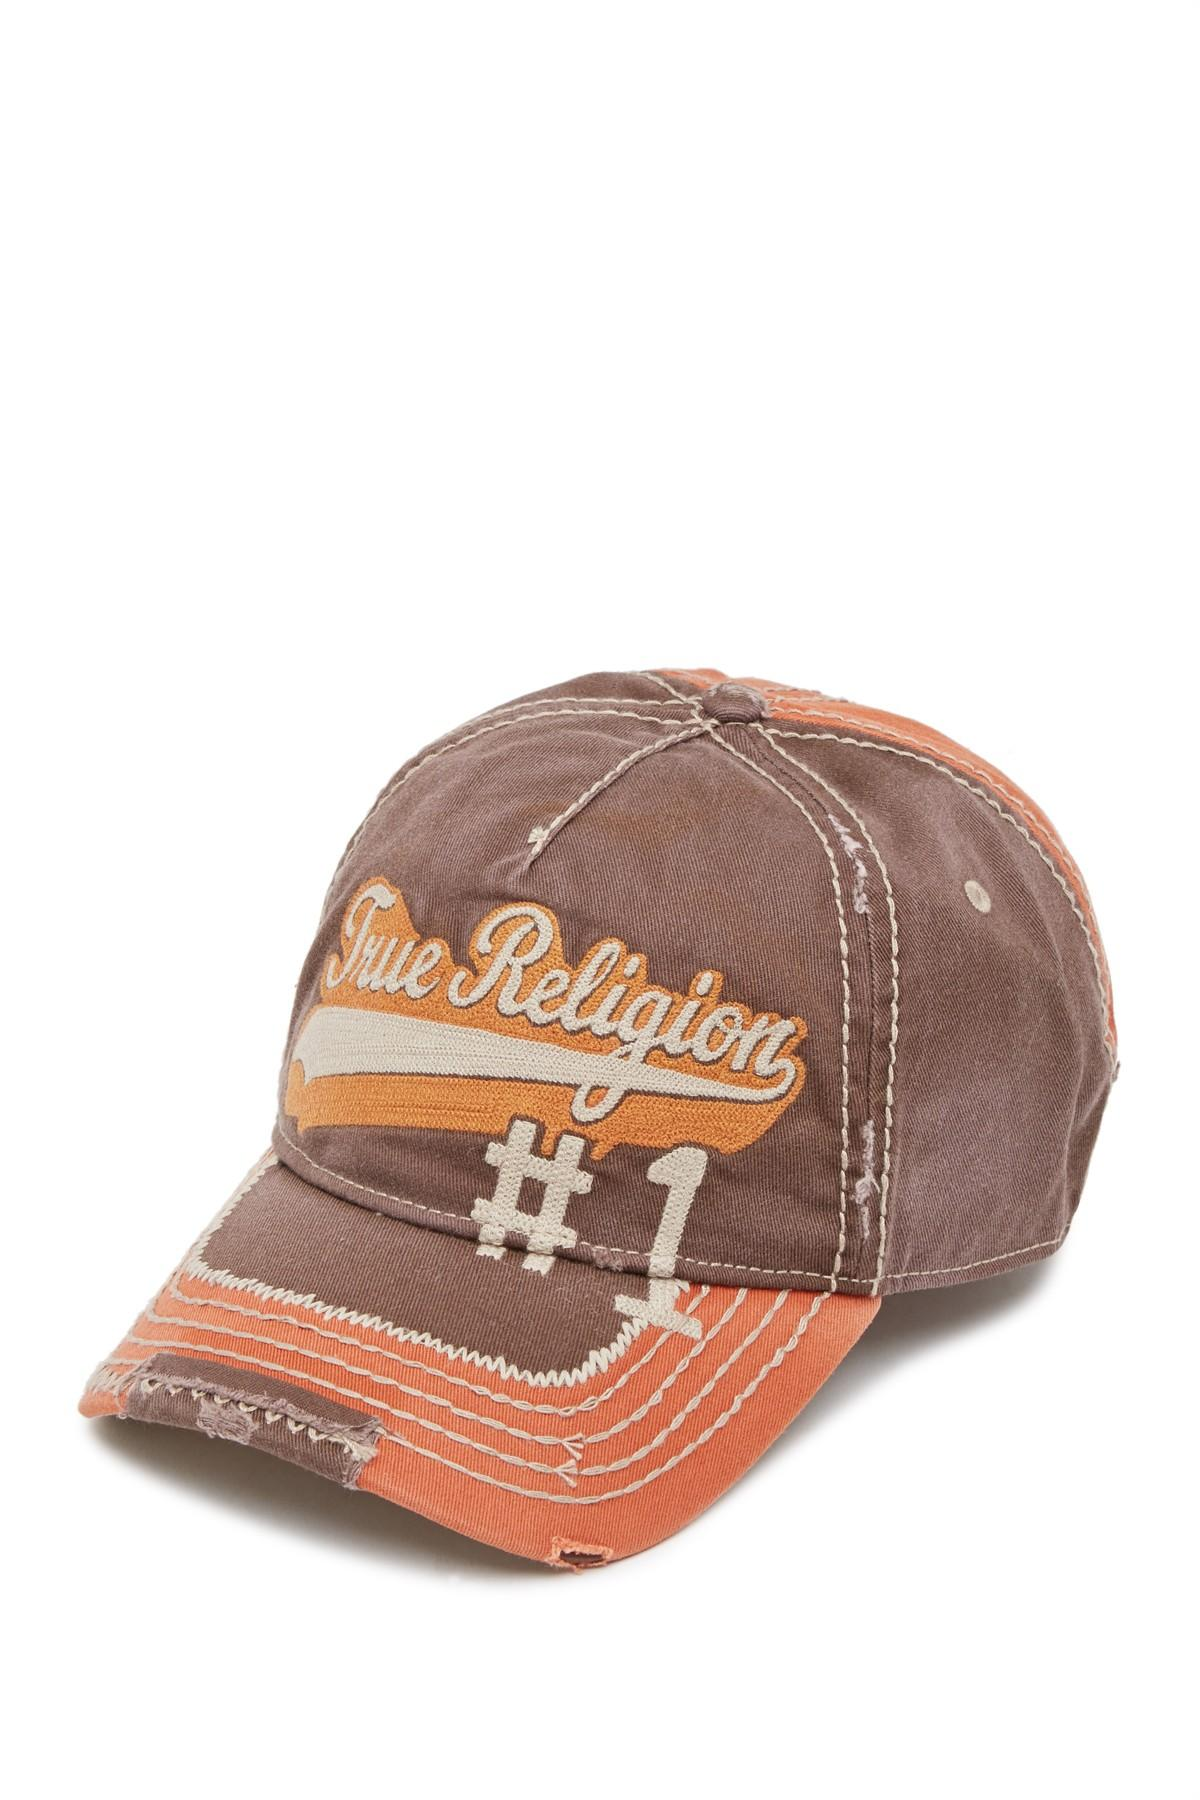 72a16afeea3d7 Lyst - True Religion Script Baseball Cap in Brown for Men